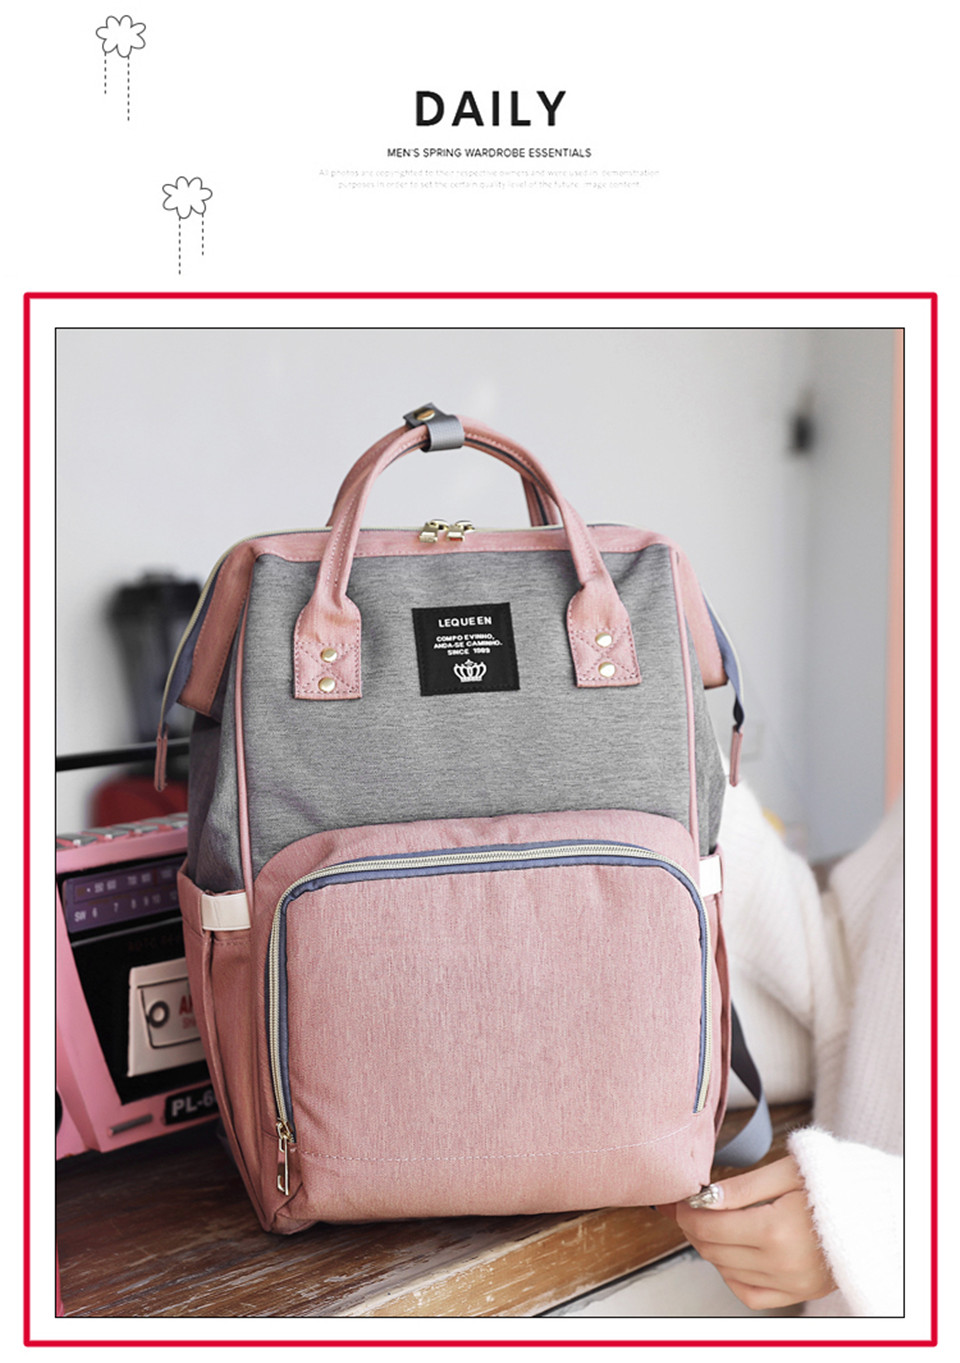 Nappy Backpack Bag Mummy Large Capacity Bag Mom Baby Multi-function Waterproof Outdoor Travel Diaper Bags For Baby Care